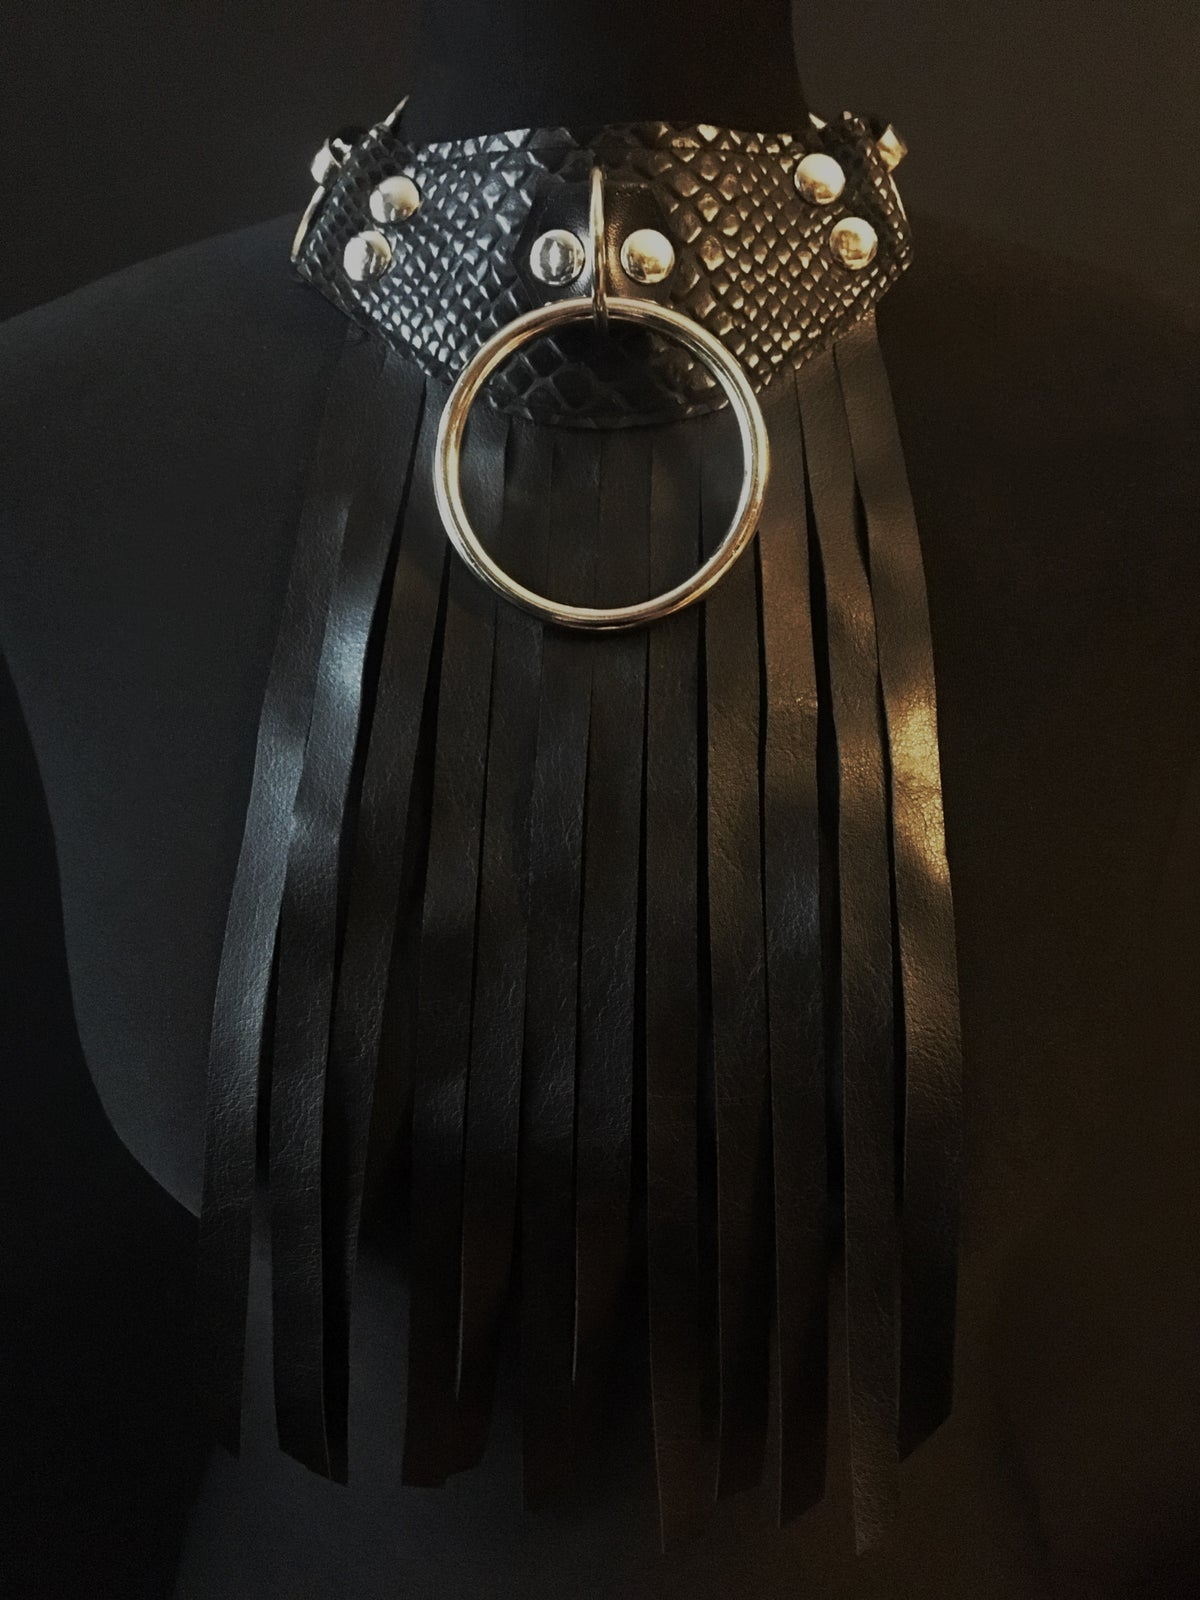 Rounded fringed necklace with silver details